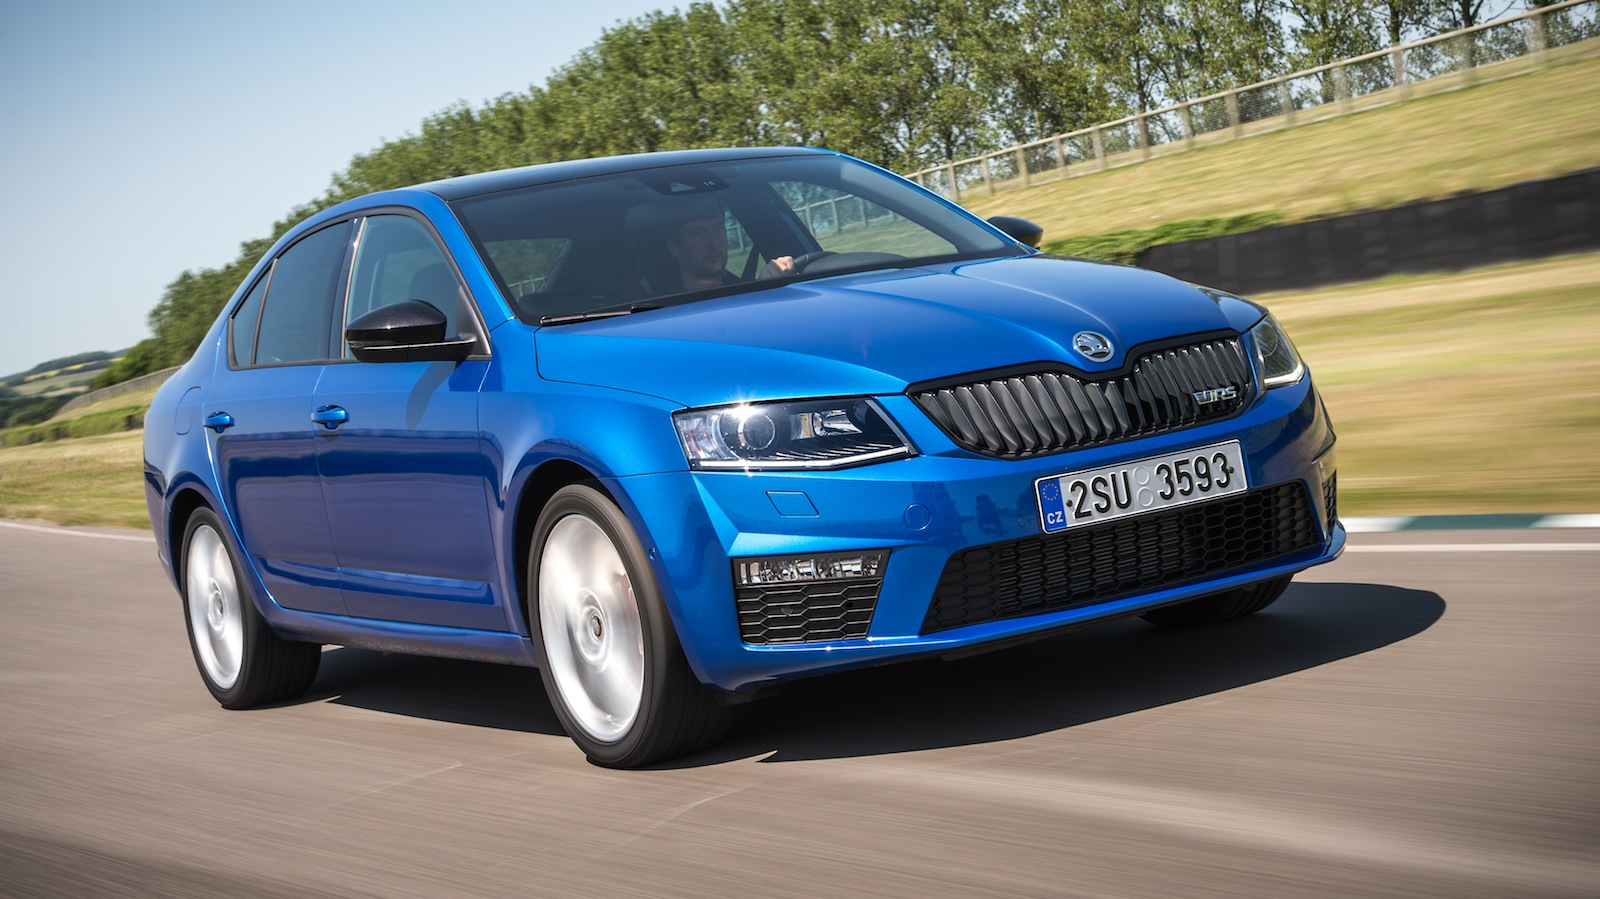 skoda octavia rs sporty sedan wagon here in 2014 photos 1 of 19. Black Bedroom Furniture Sets. Home Design Ideas